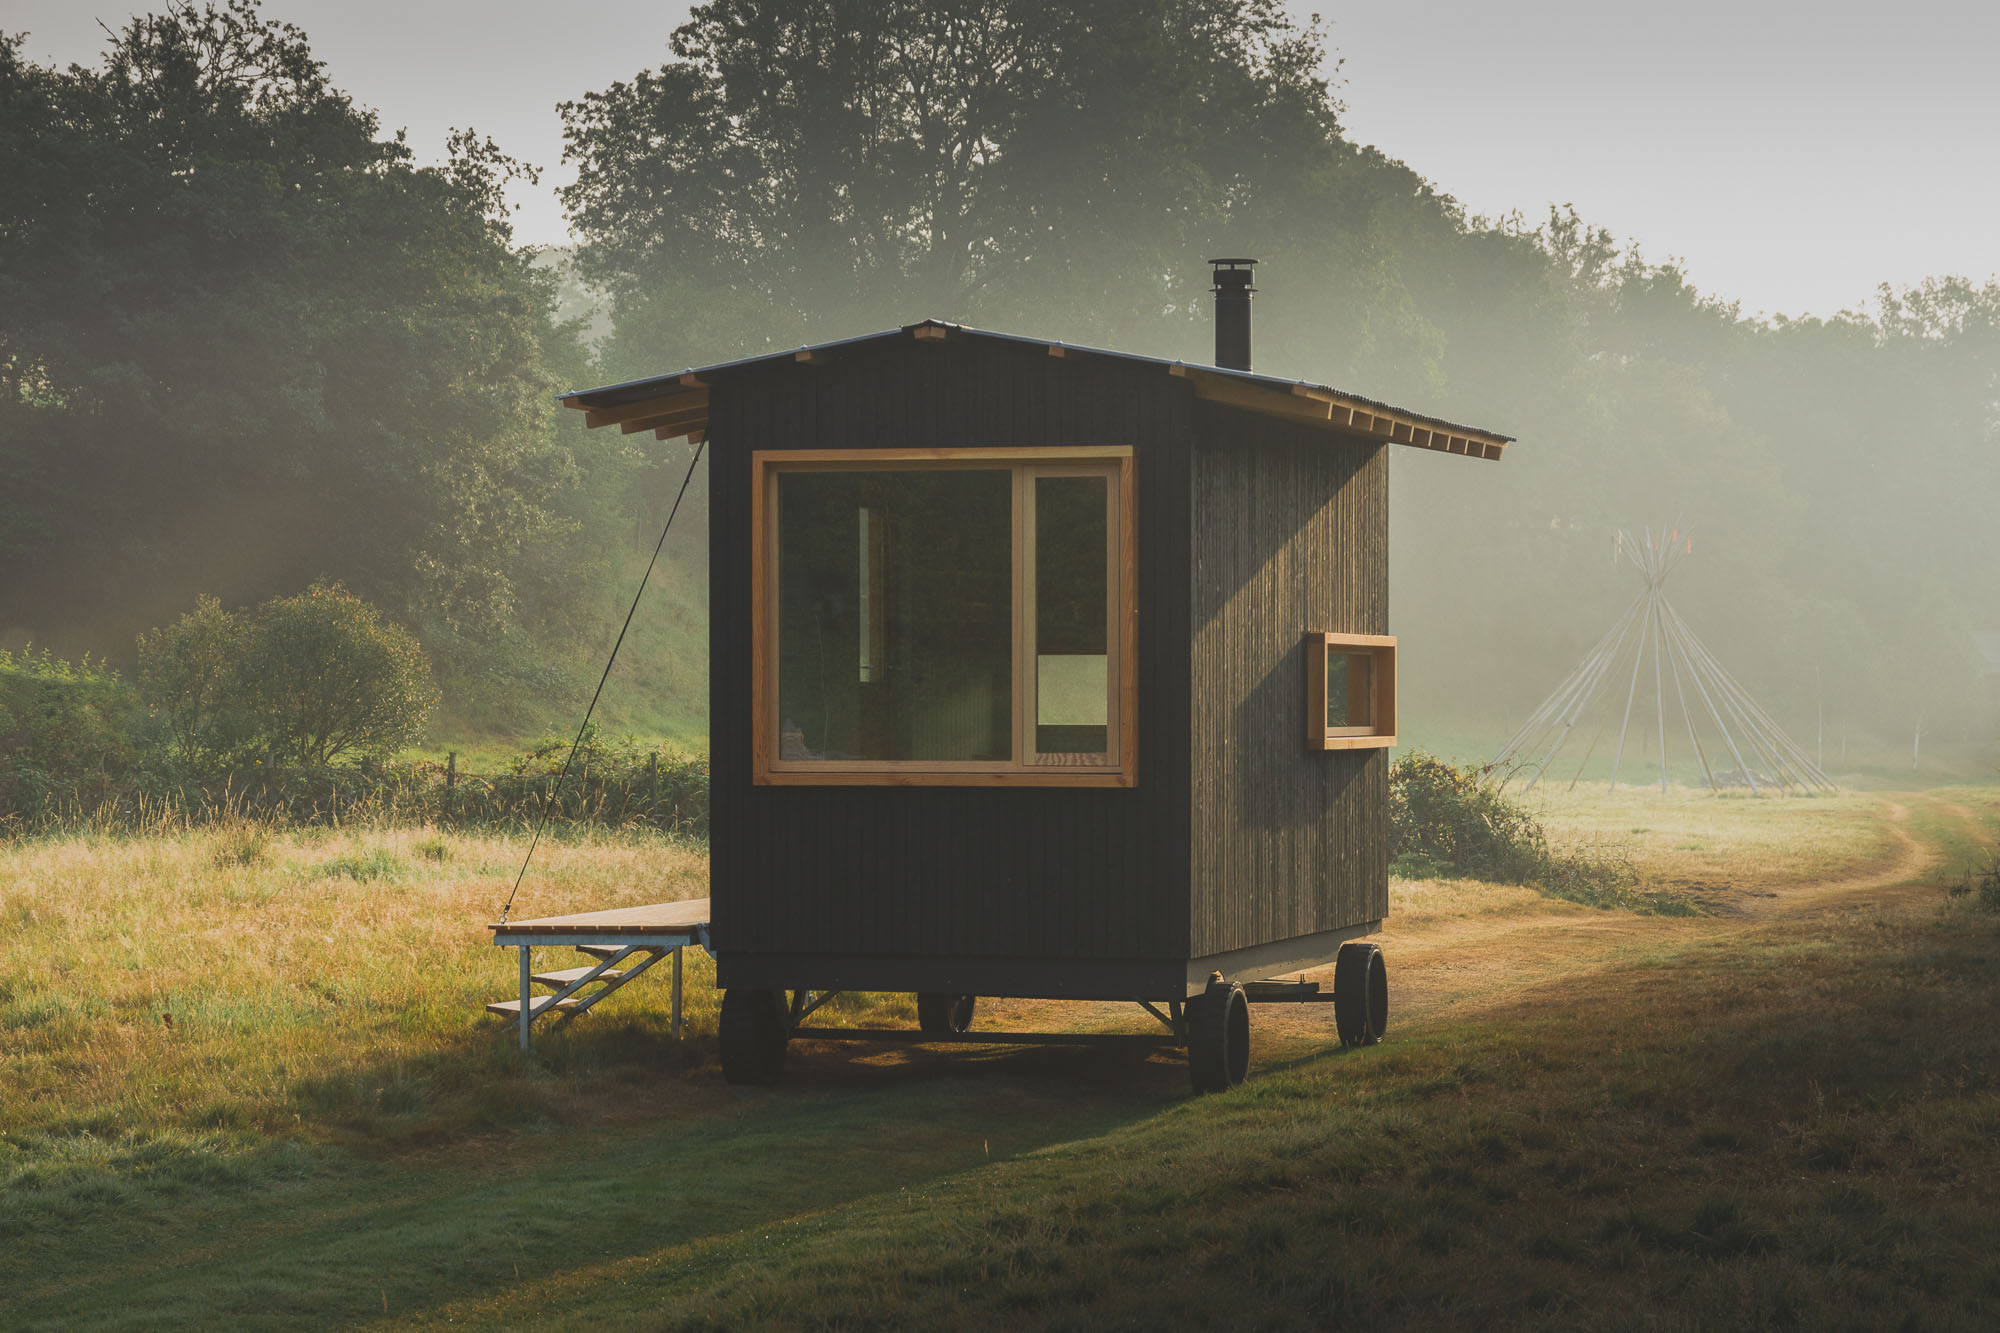 off grid tiny wooden nomad cabin with black cladding in a sunny field with outdoor deck and seating